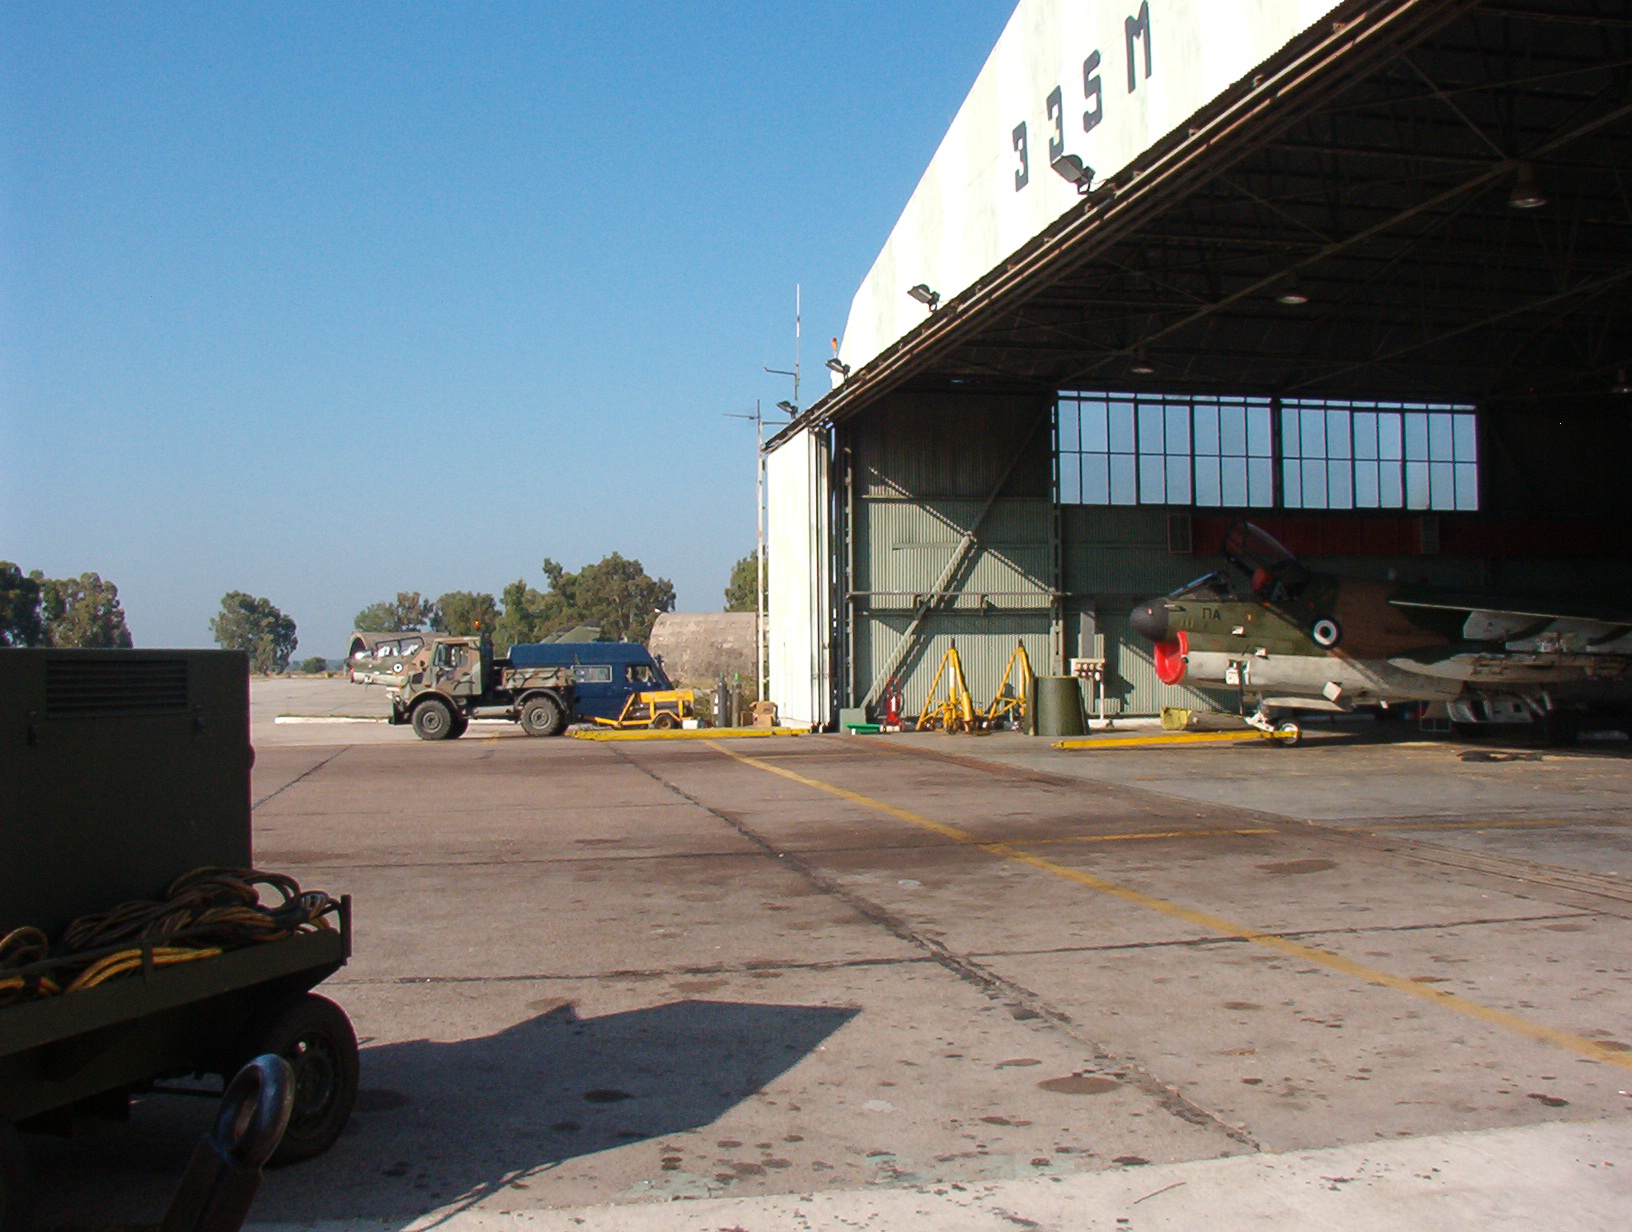 Hellenic Airforce - 335 SQ Repair Hangar - close-up